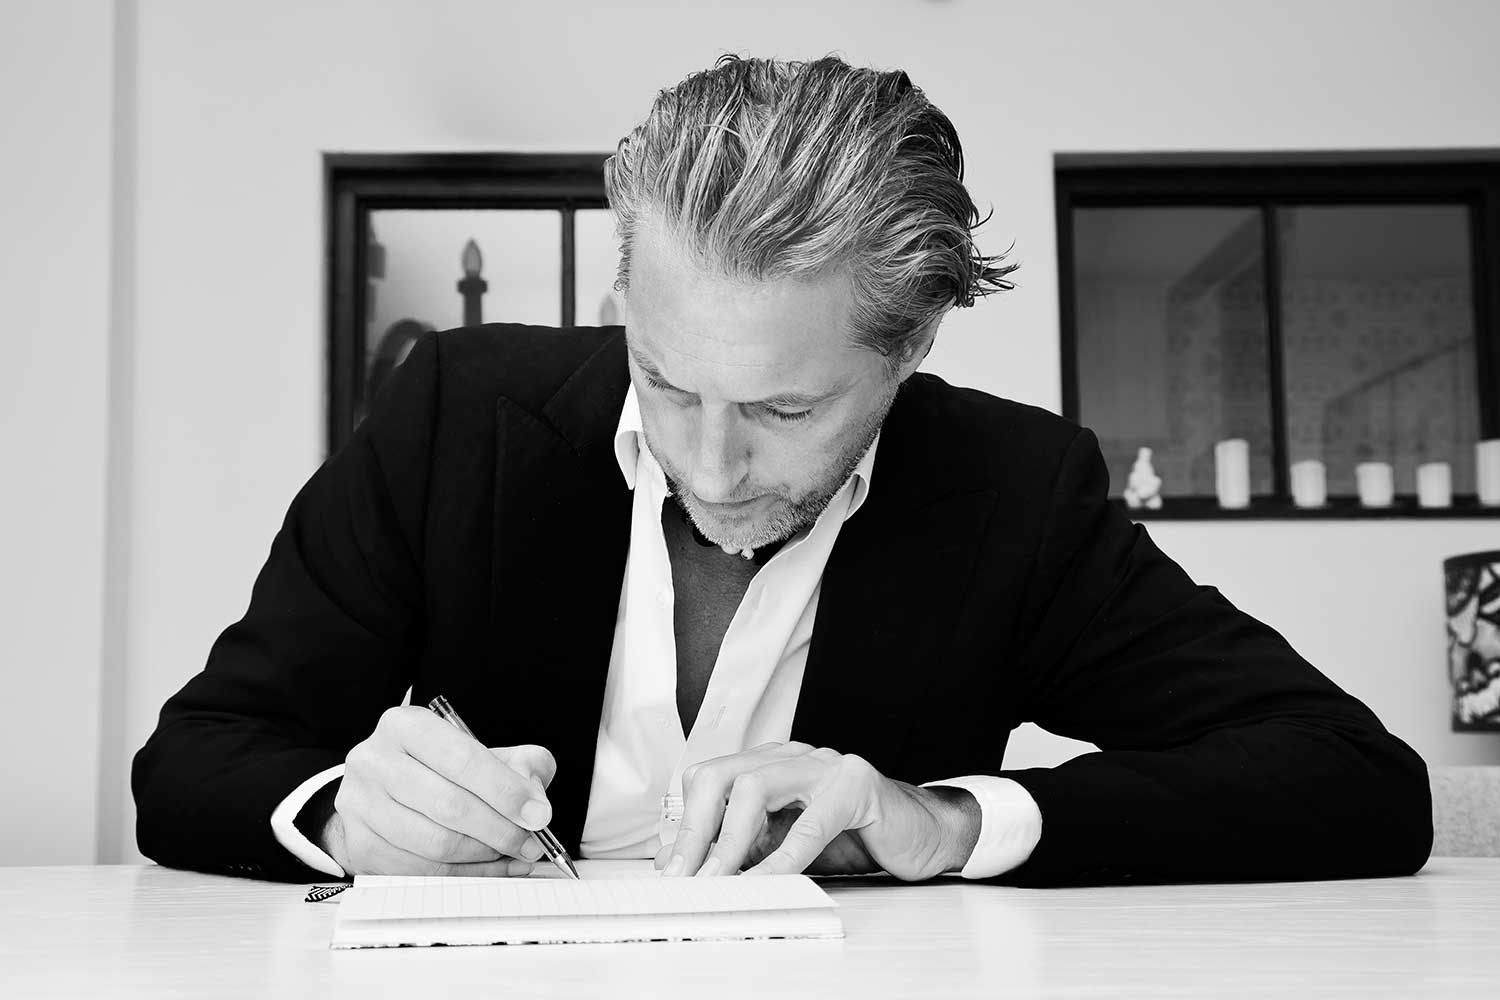 Marcel Wanders sketching in his studio | Yellowtrace.